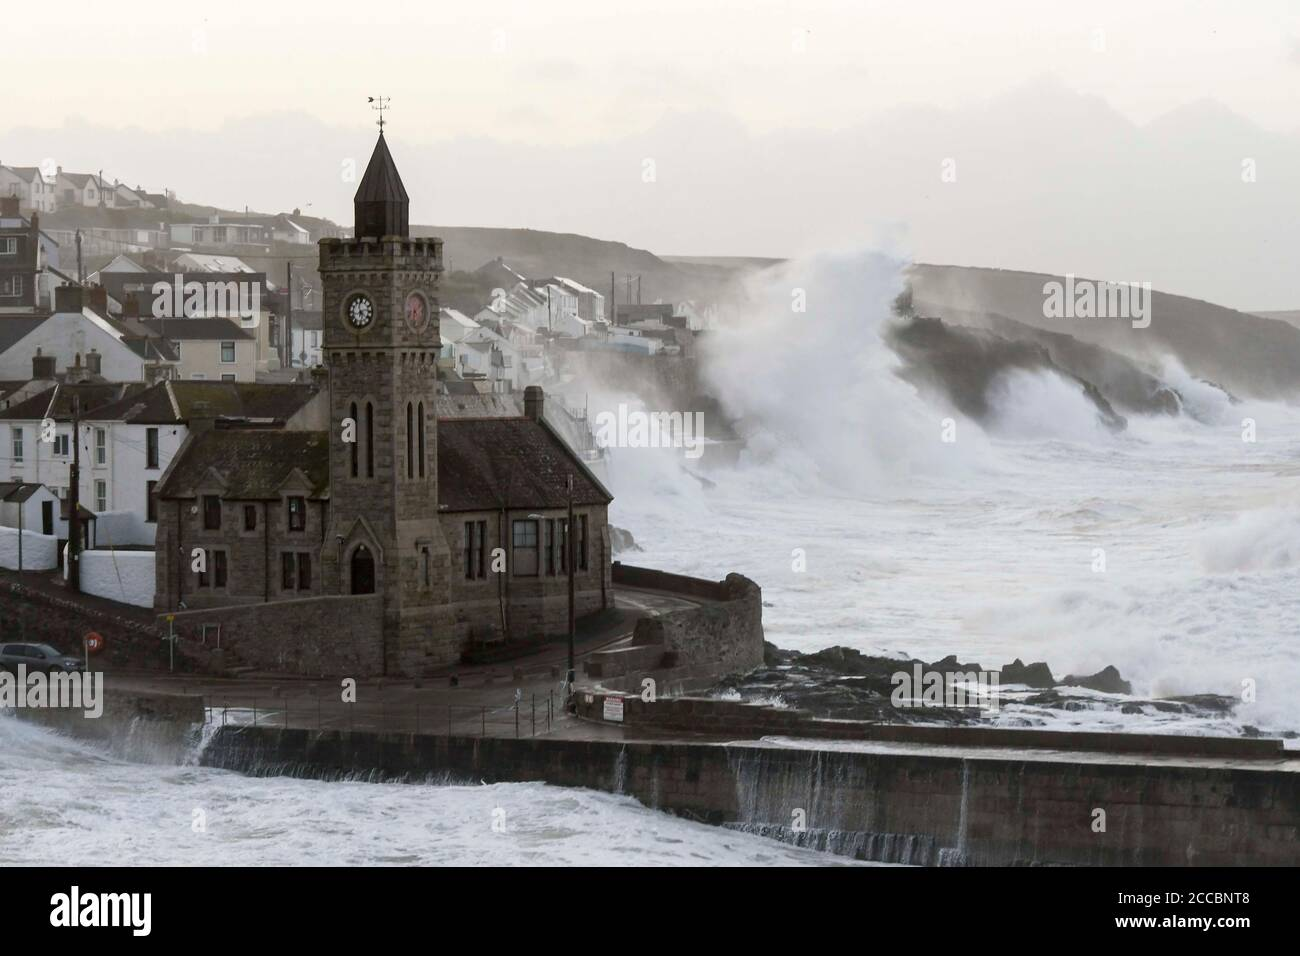 Porthleven, Cornwall, UK.  21st August 2020.  UK Weather.  Huge waves from Storm Ellen smash into the cliffs and coastal defences at Porthleven in Cornwall at sunrise during high tide on a morning of gale force winds from Storm Ellen.  Picture Credit: Graham Hunt/Alamy Live News Stock Photo